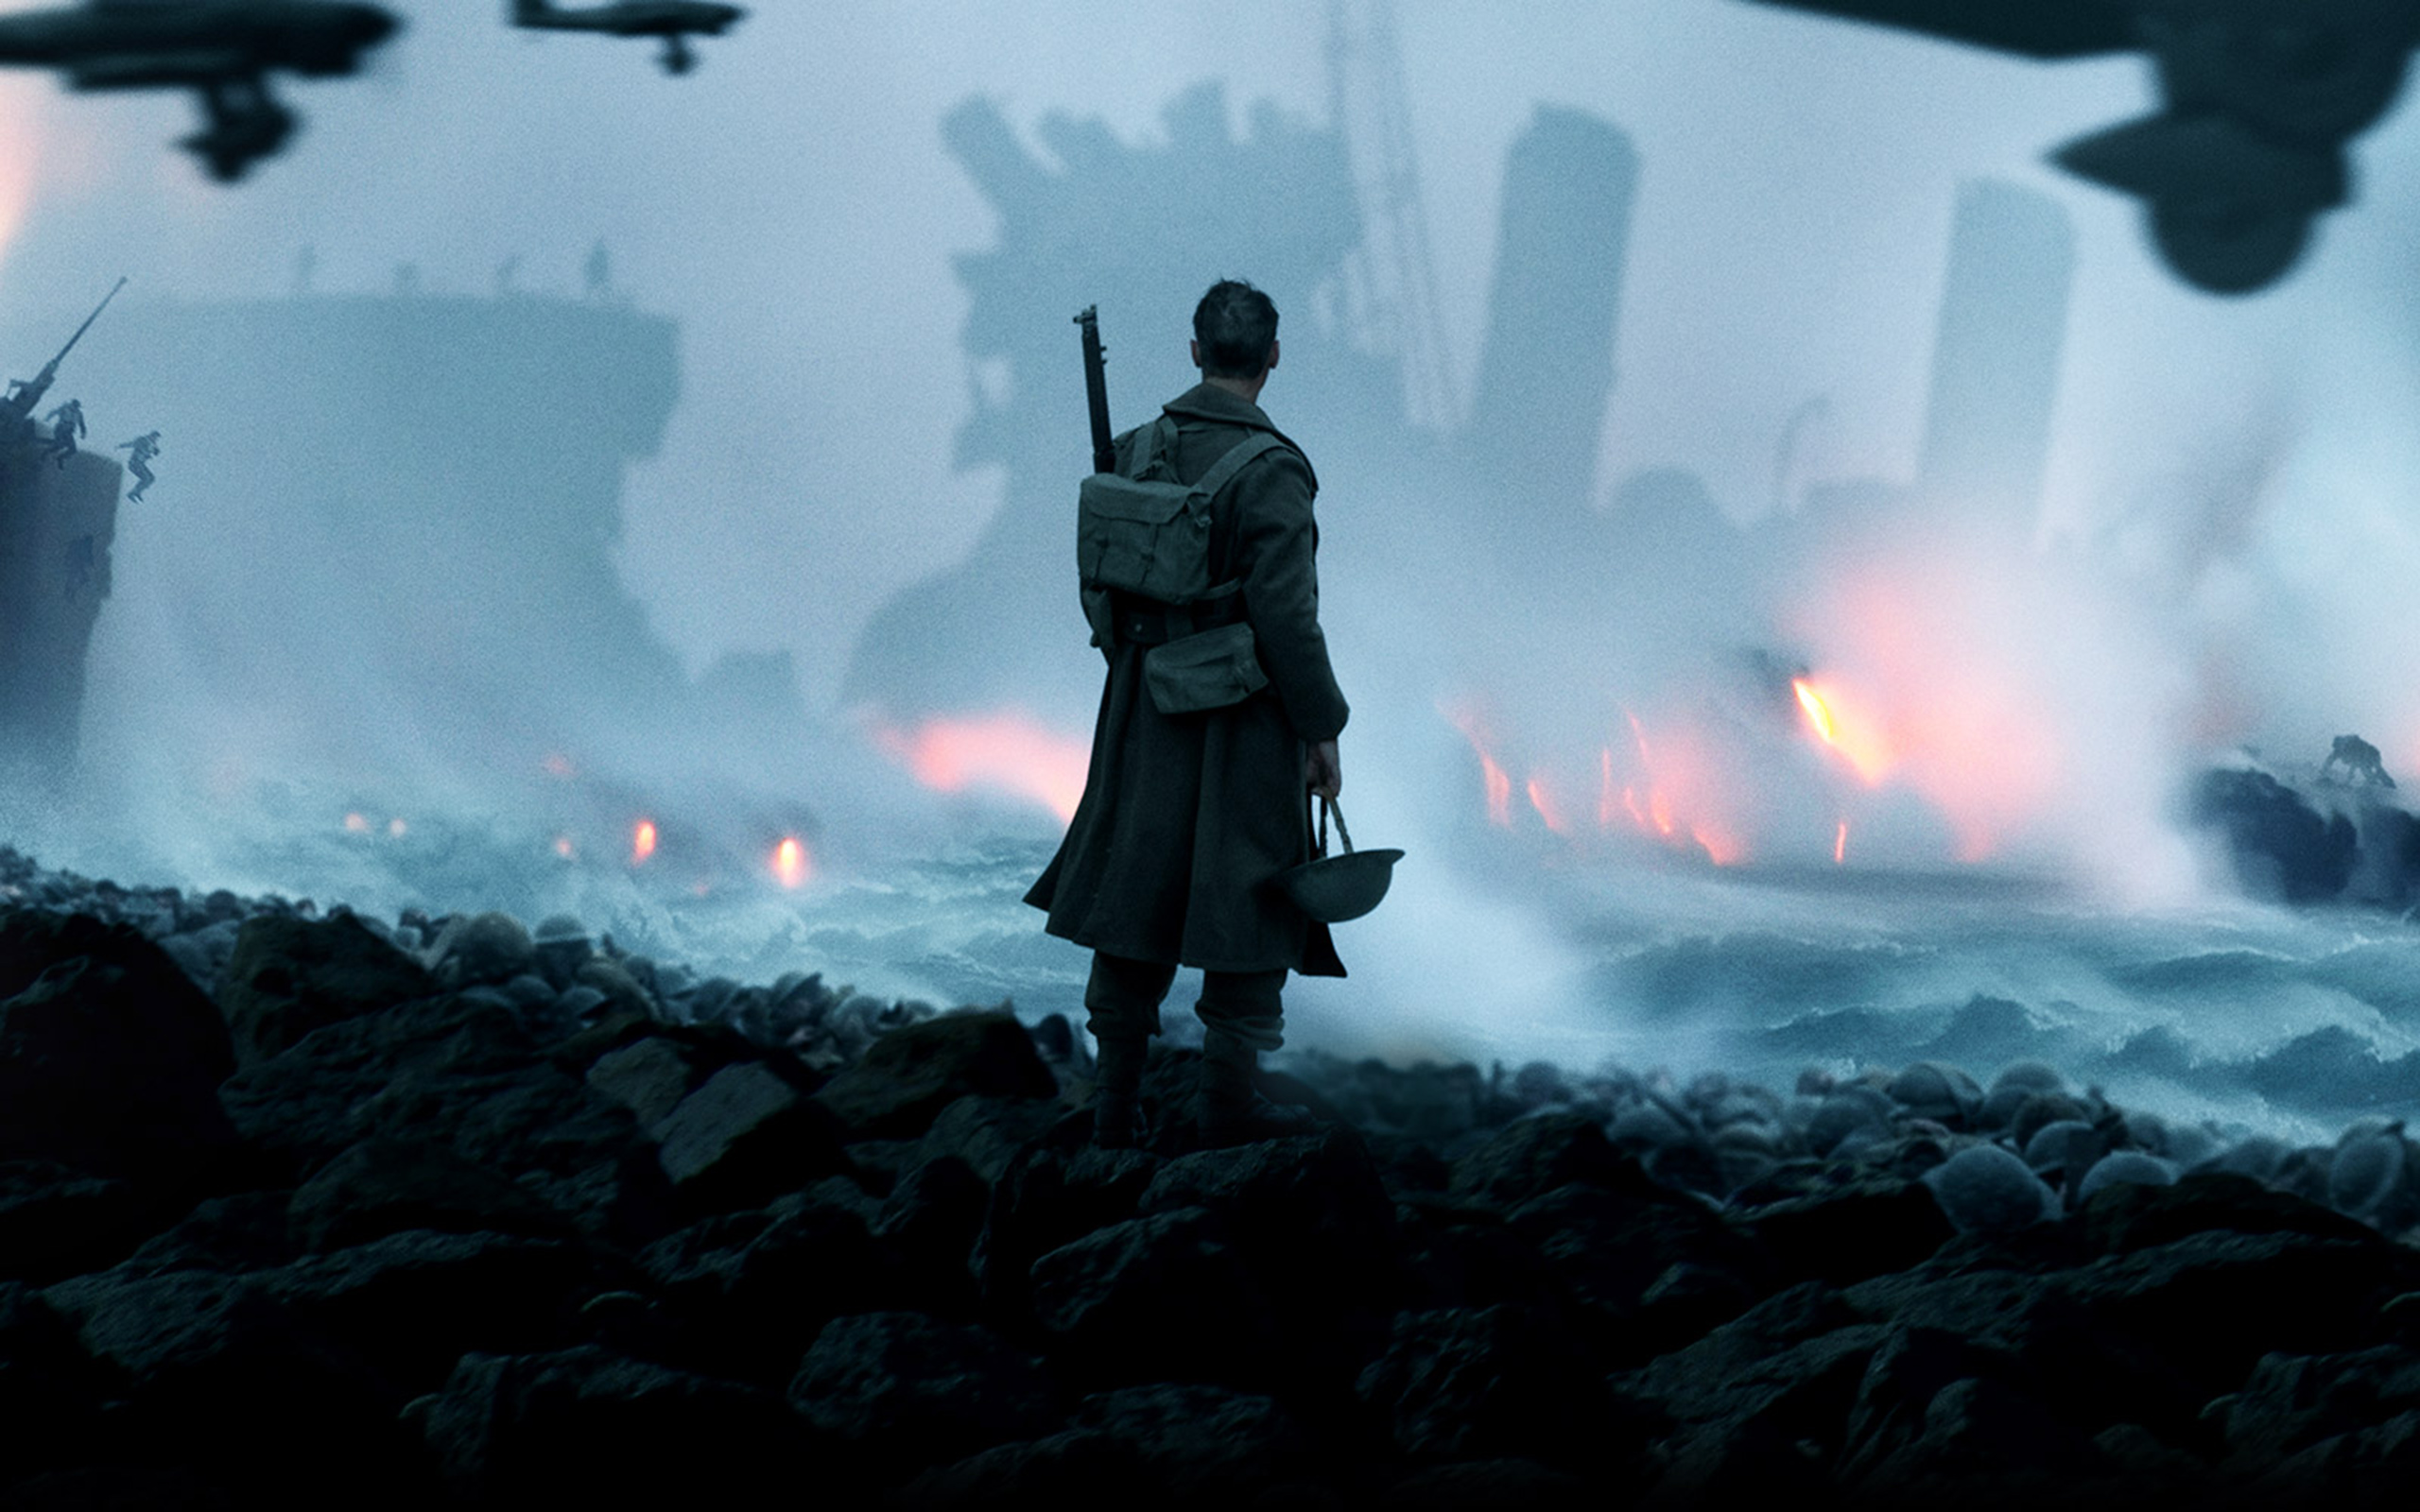 Dunkirk 2017 Movie